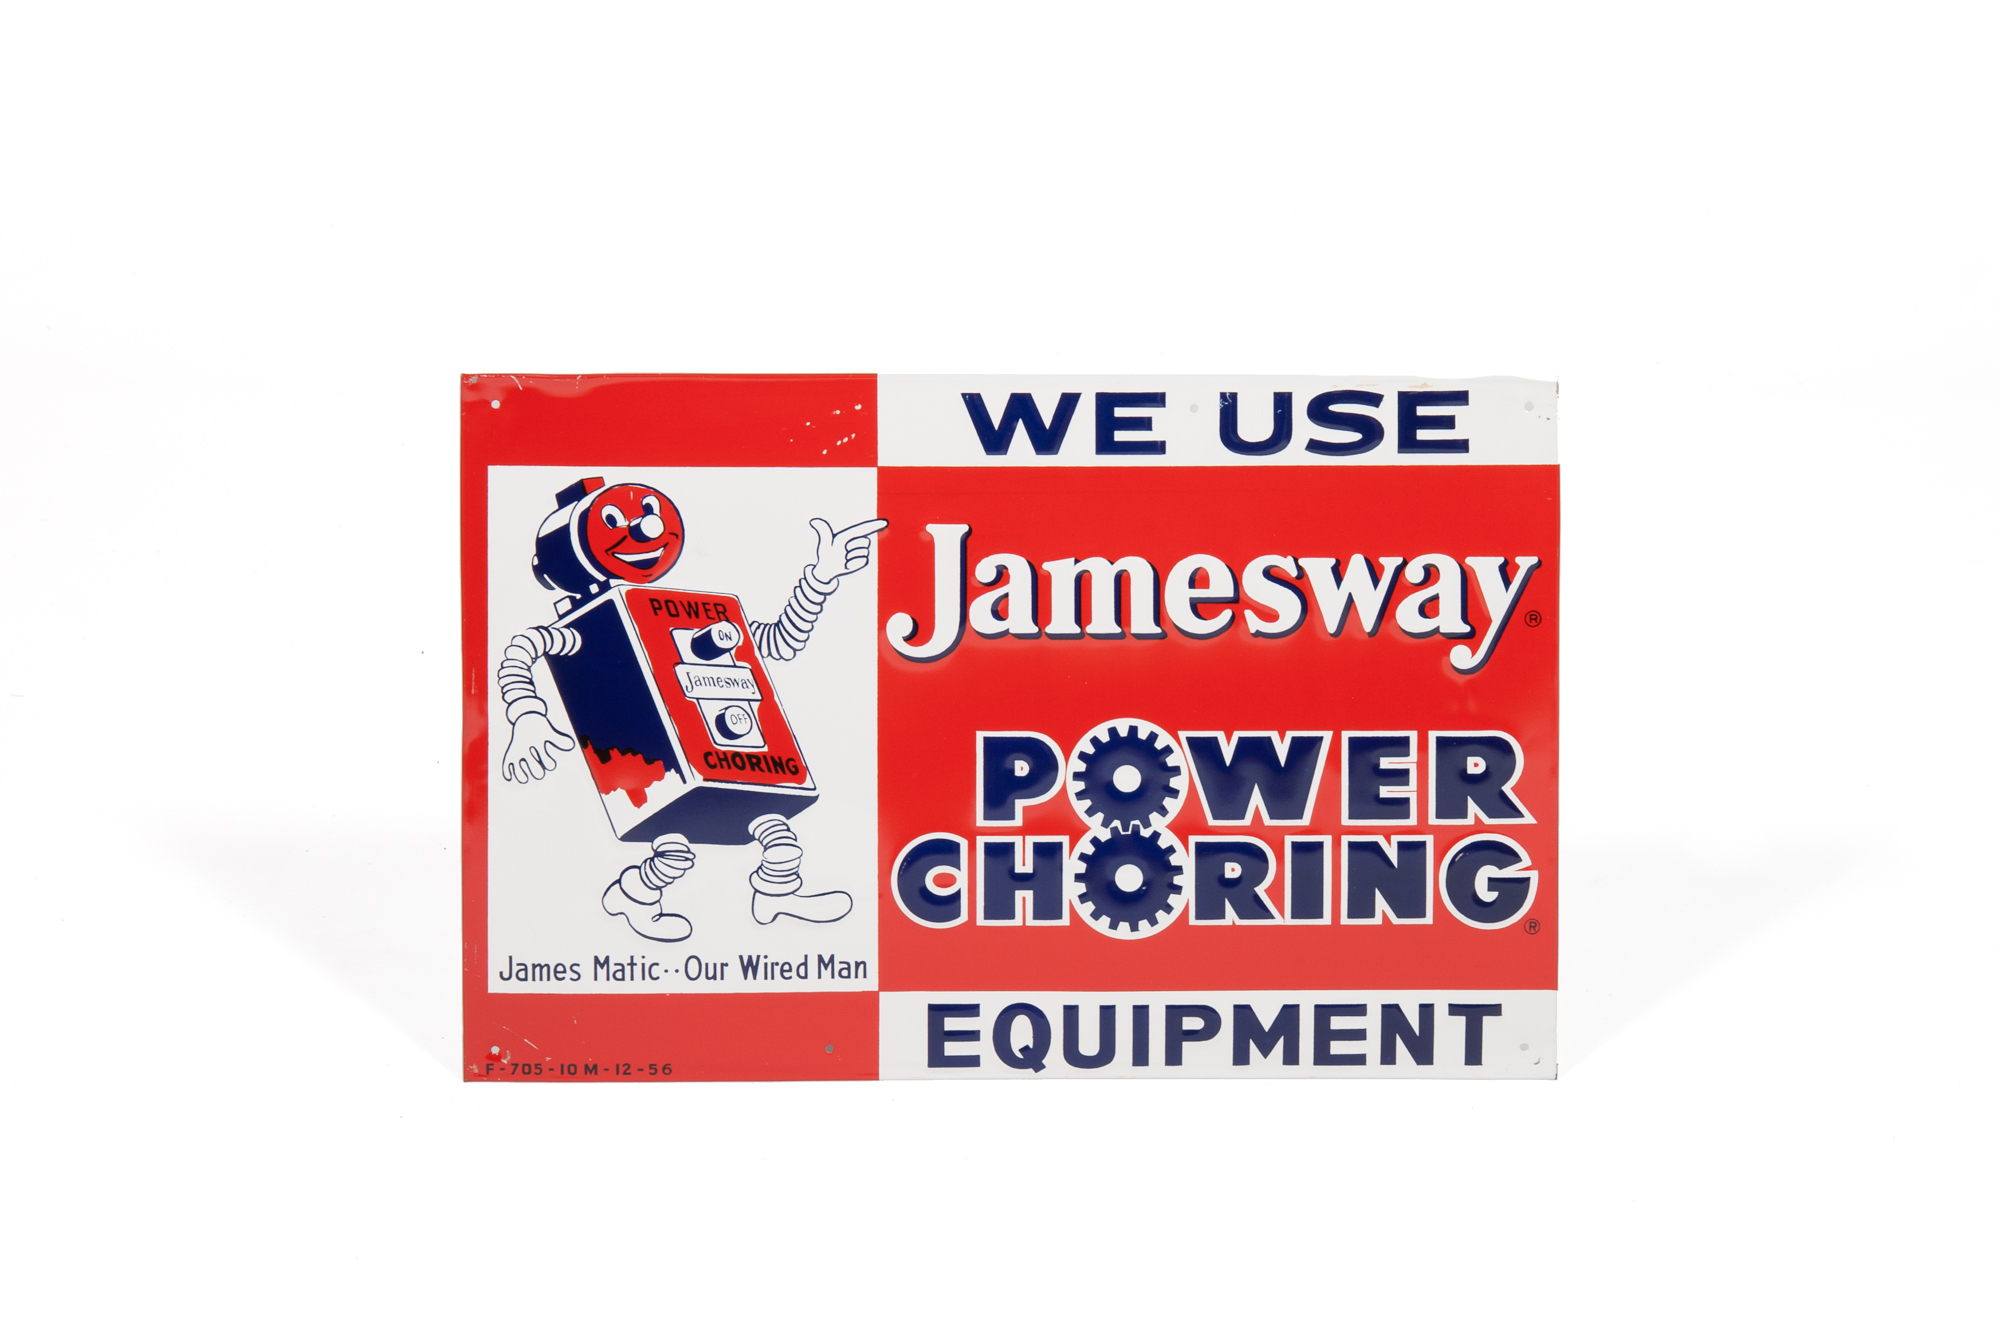 Advertising Sign with Robotic Figure (Jamesway Power Choring Equipment)